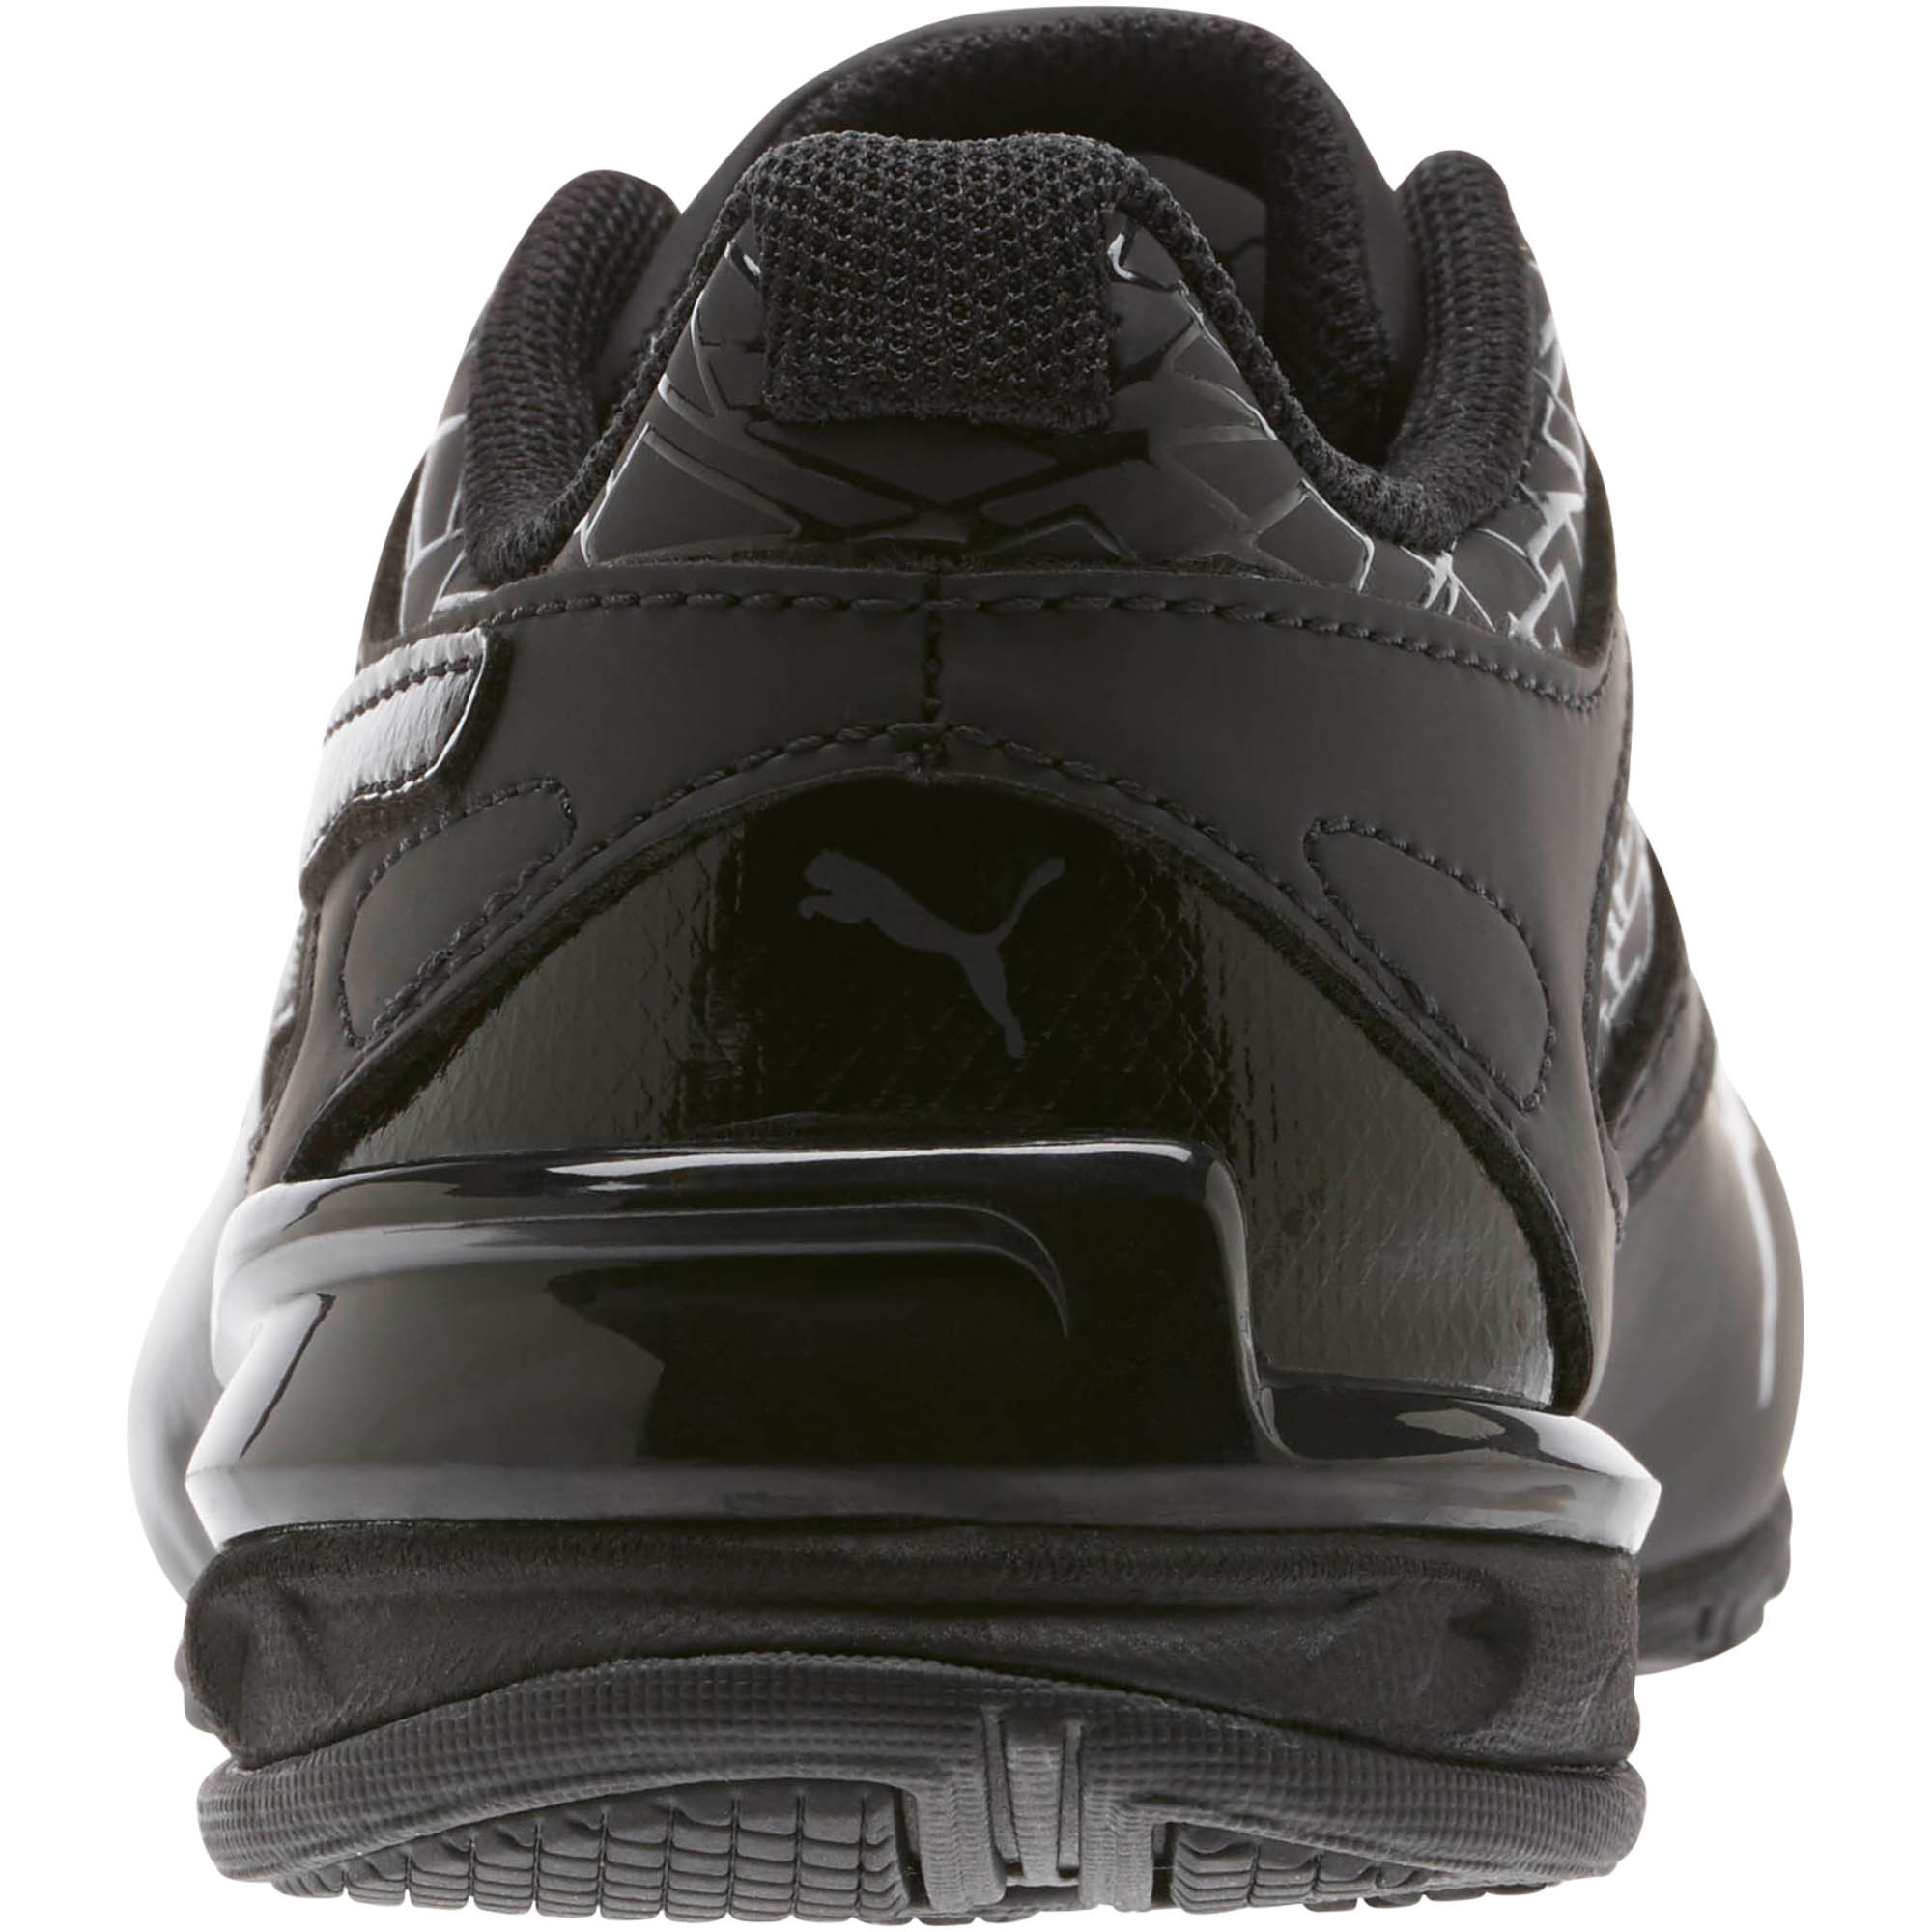 PUMA-Tazon-6-Fracture-AC-Little-Kids-039-Shoes-Kids-Shoe-Kids thumbnail 9